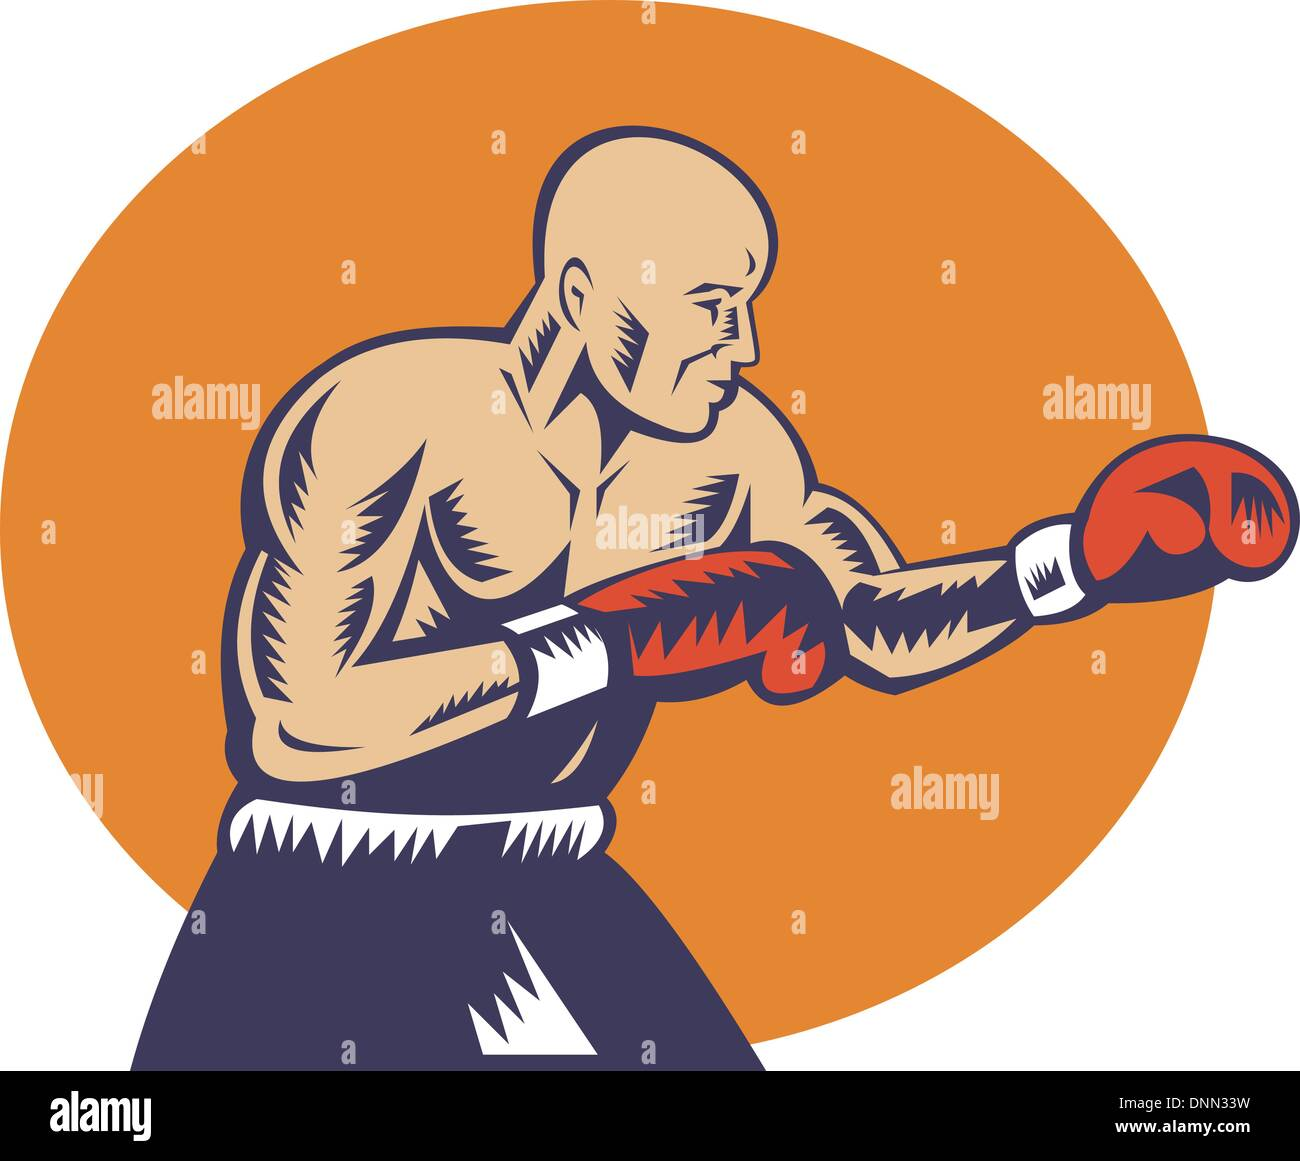 illustration of a boxer jabbing side view done in woodcut style - Stock Image